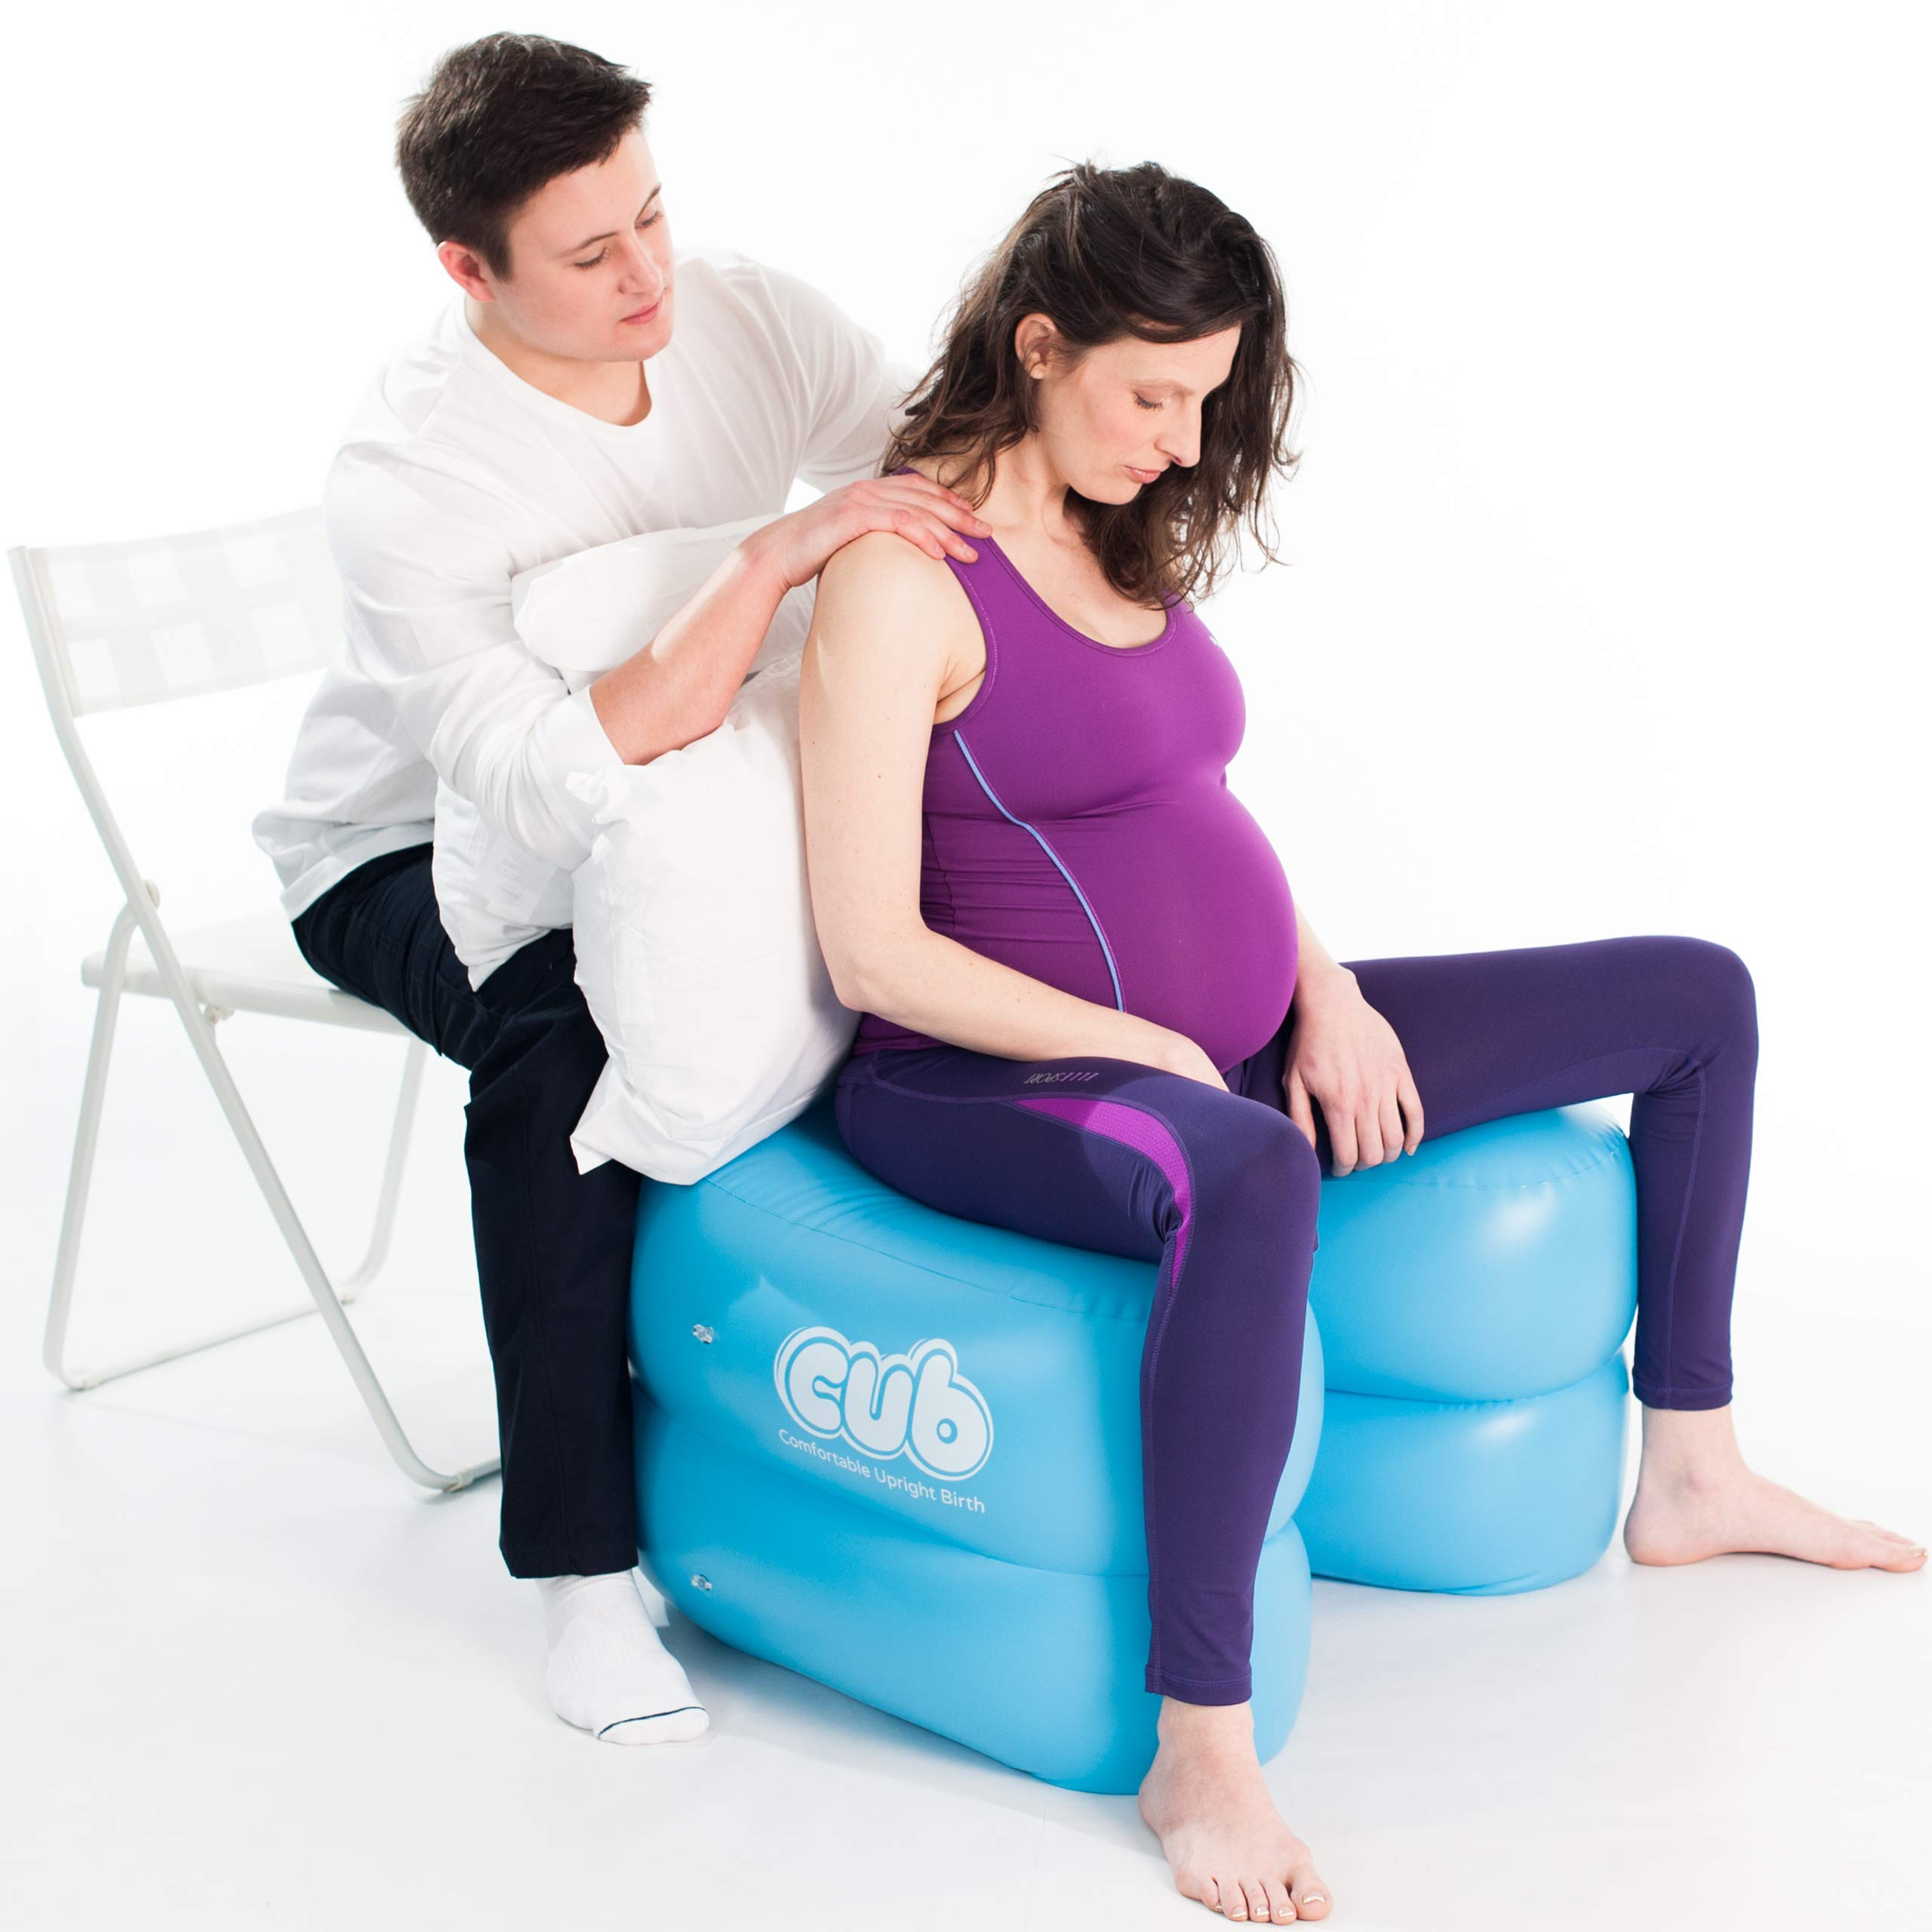 CUB Support for Pregnancy, Labor and Birth. Can Relieve Pregnancy Pelvic Pain, Promotes Safe, Healthy and Natural Birth Positions. Much More Than a Stool or Birthing Ball (Color Teal/One Size) by CUB